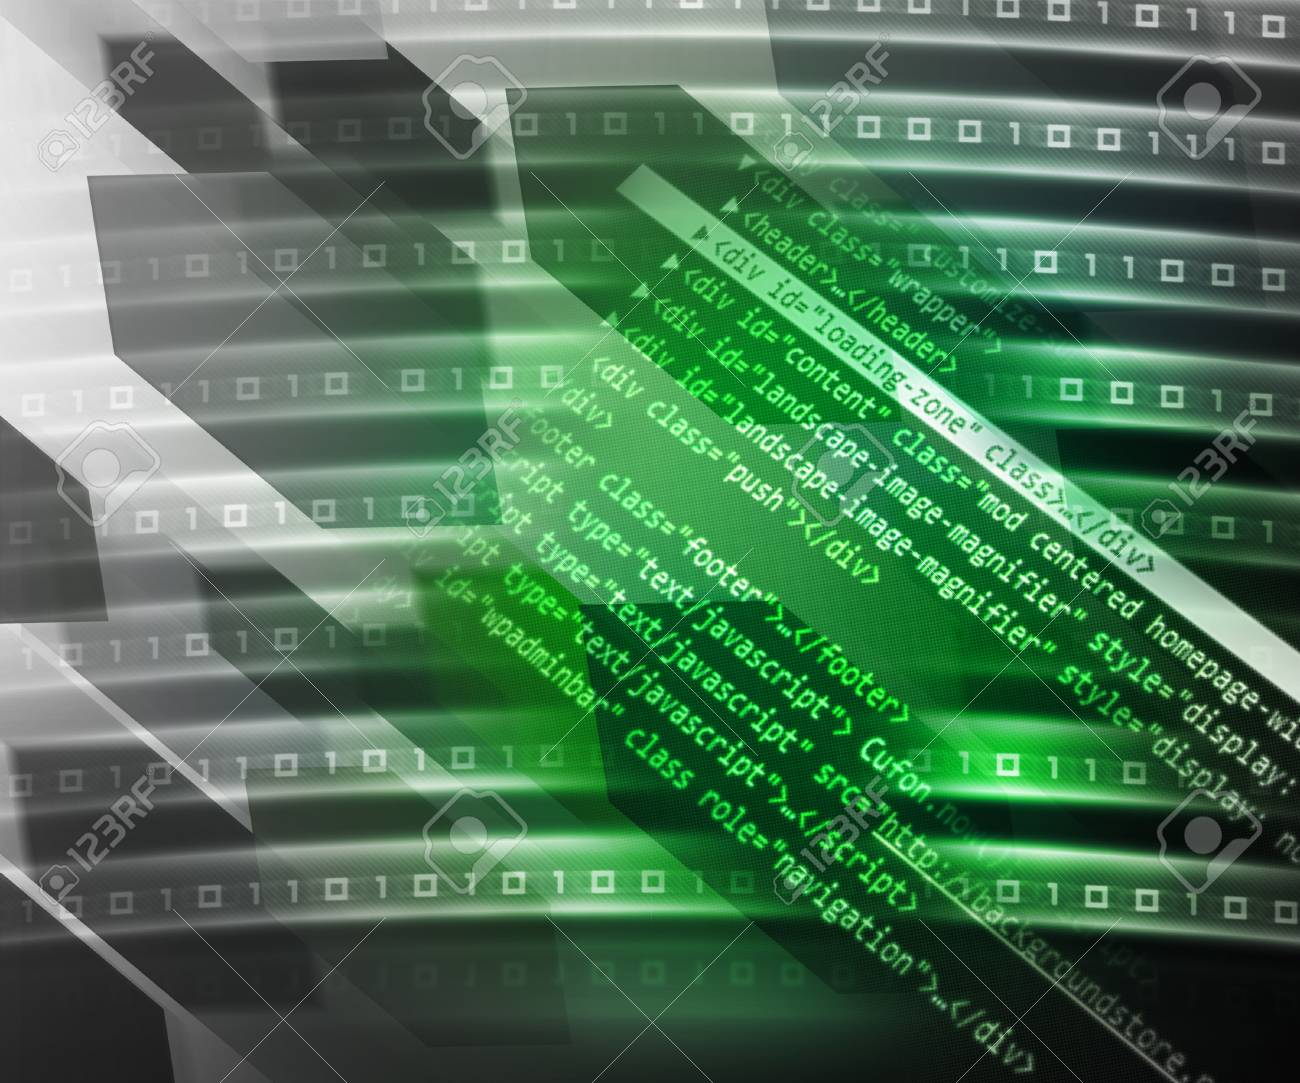 Green Source Code Background Stock Photo - 14440768